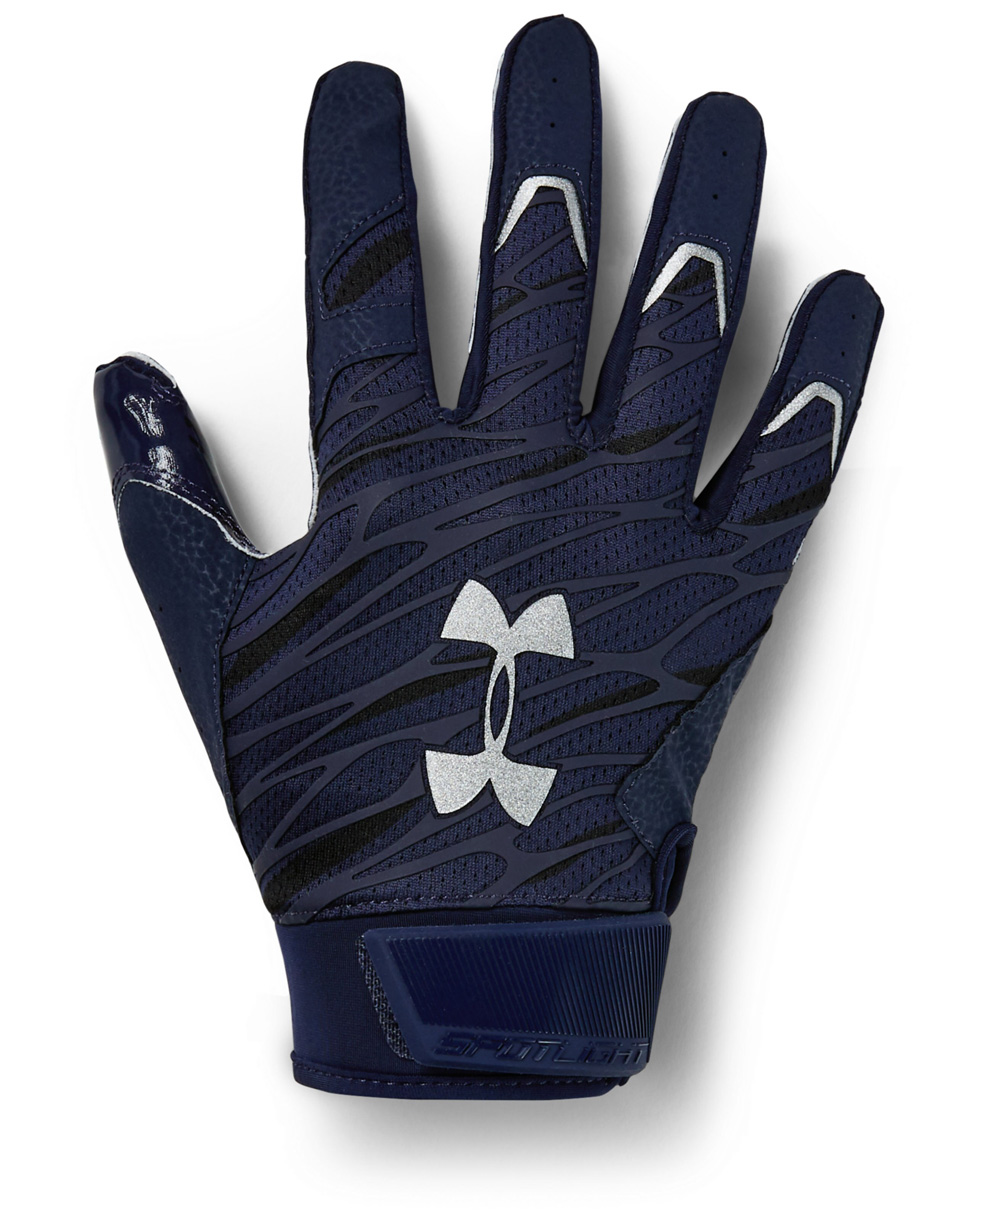 UA Spotlight Men's Football Gloves Midnight Navy